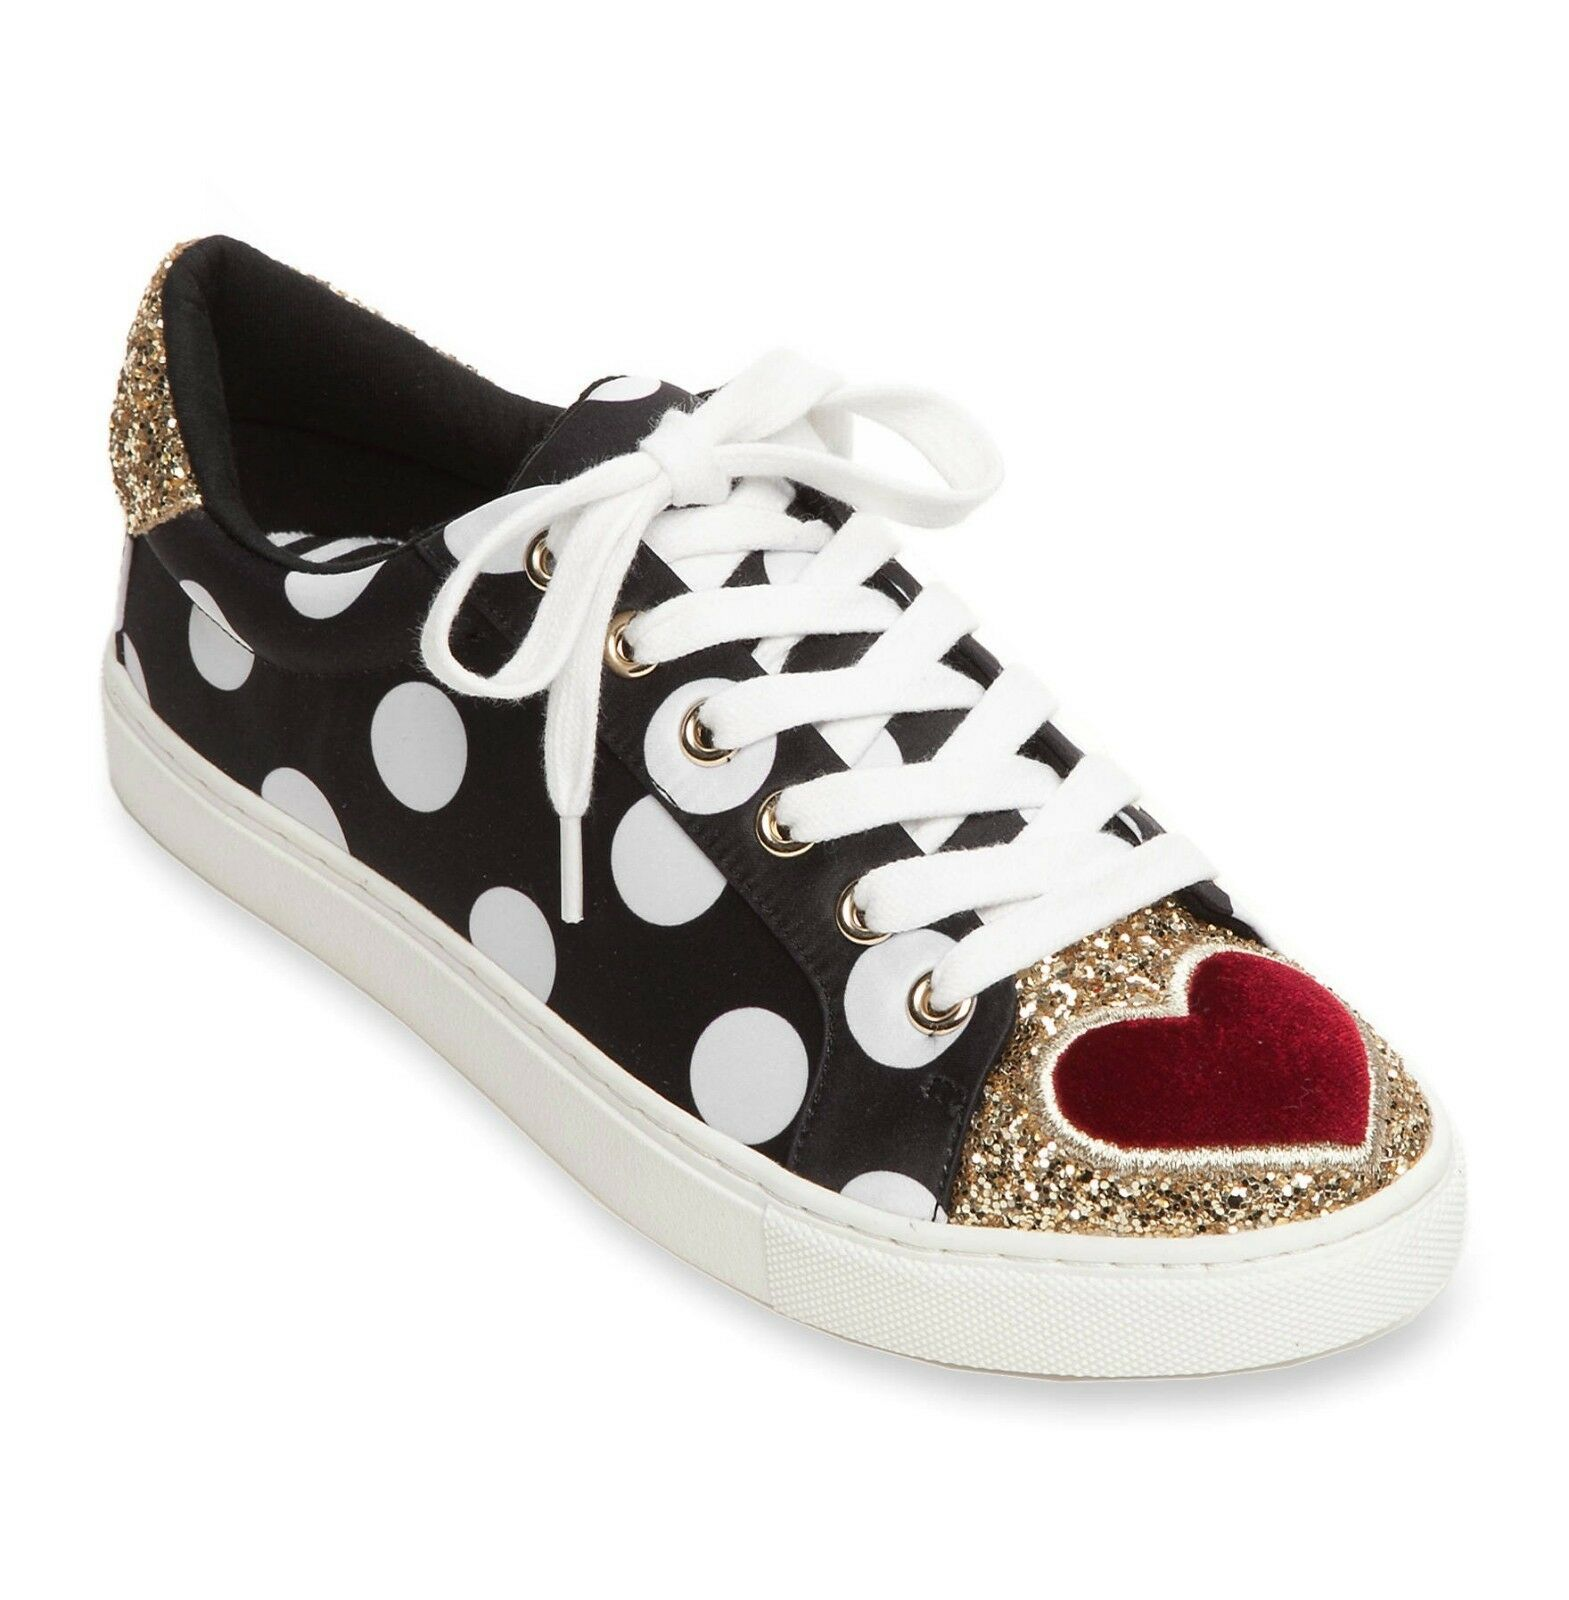 Betsey Johnson shoes Blair Dot Black gold Glitter Red Heart Sneakers Size 7.5